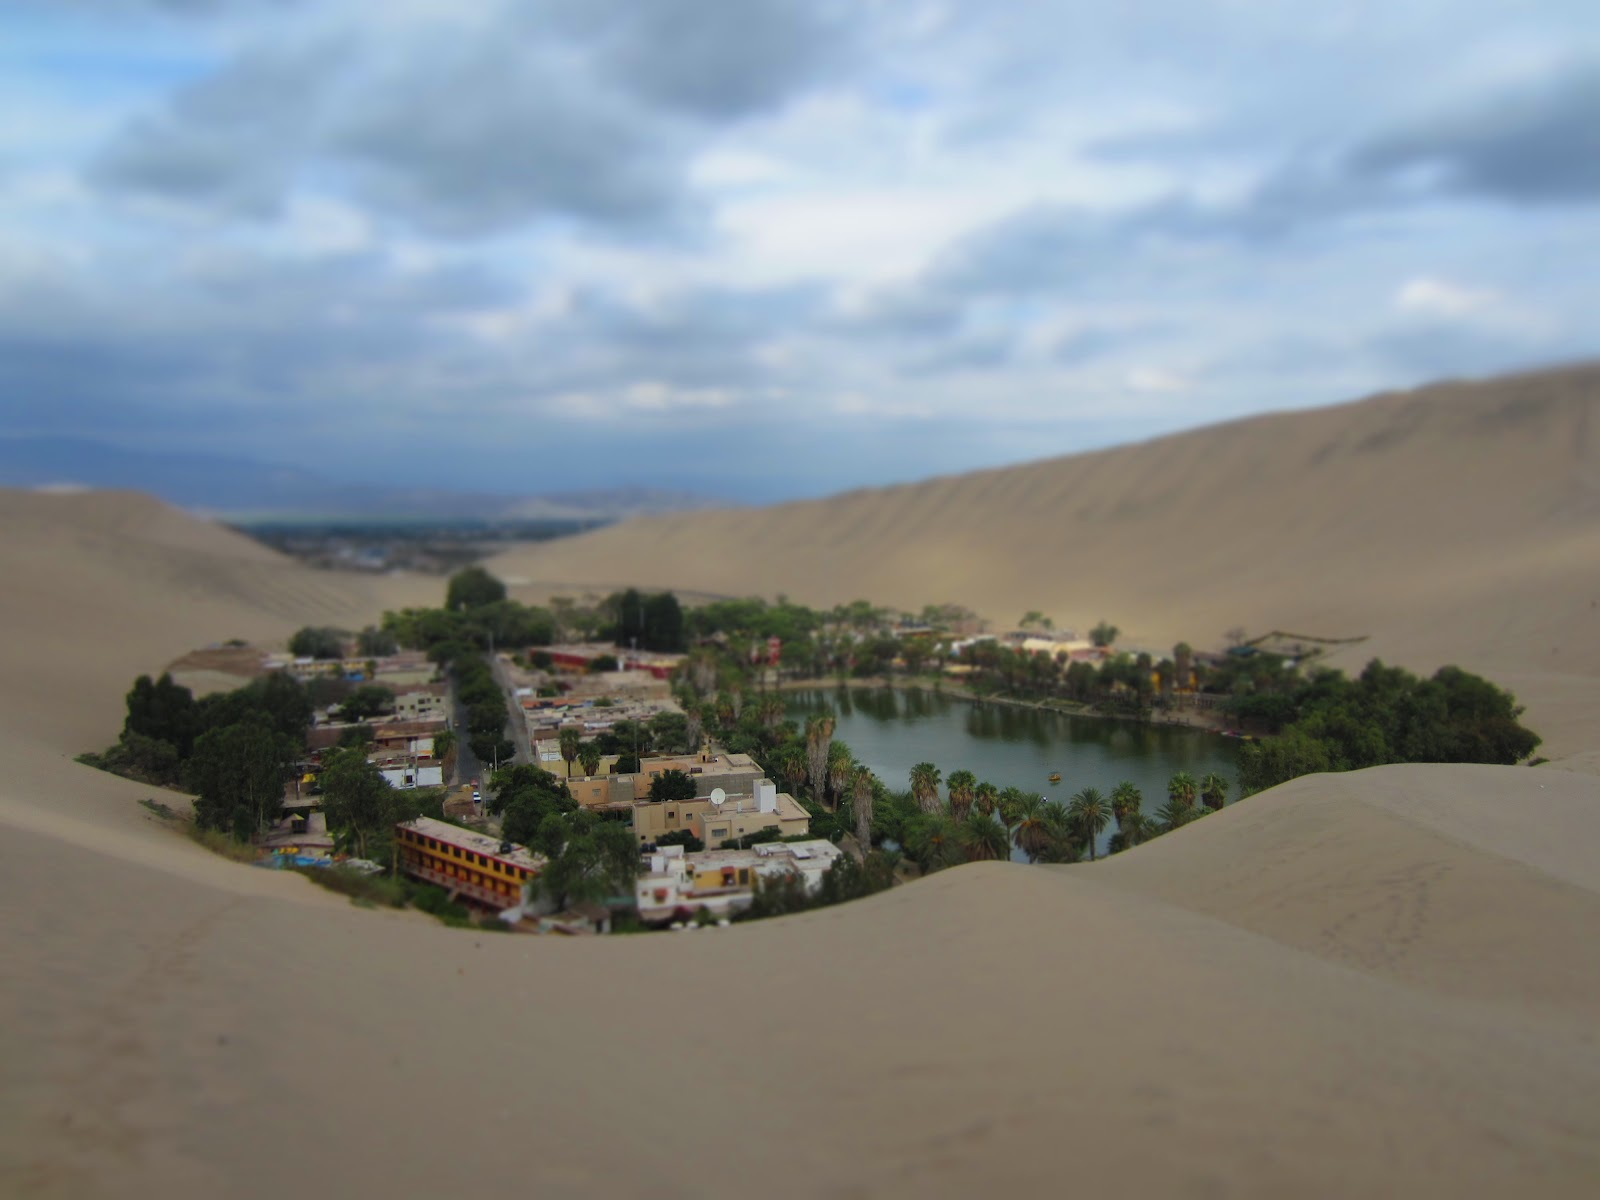 But Huacachina Is Famous For Sandboarding And Dune Buggies